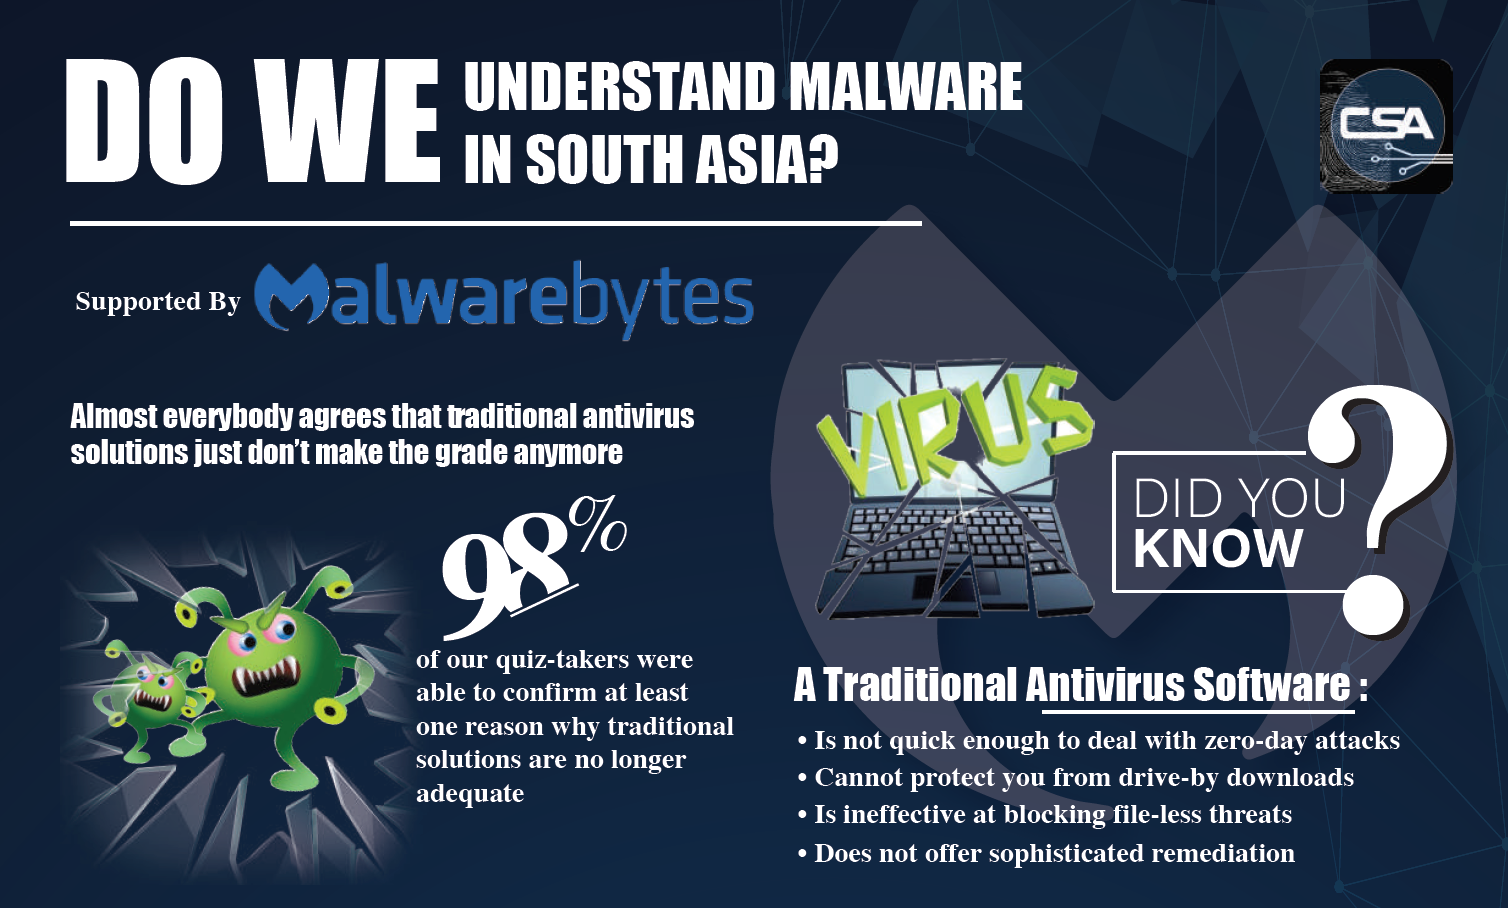 Do We Understand Malware in South Asia? Supported by Malwarebytes.pdf